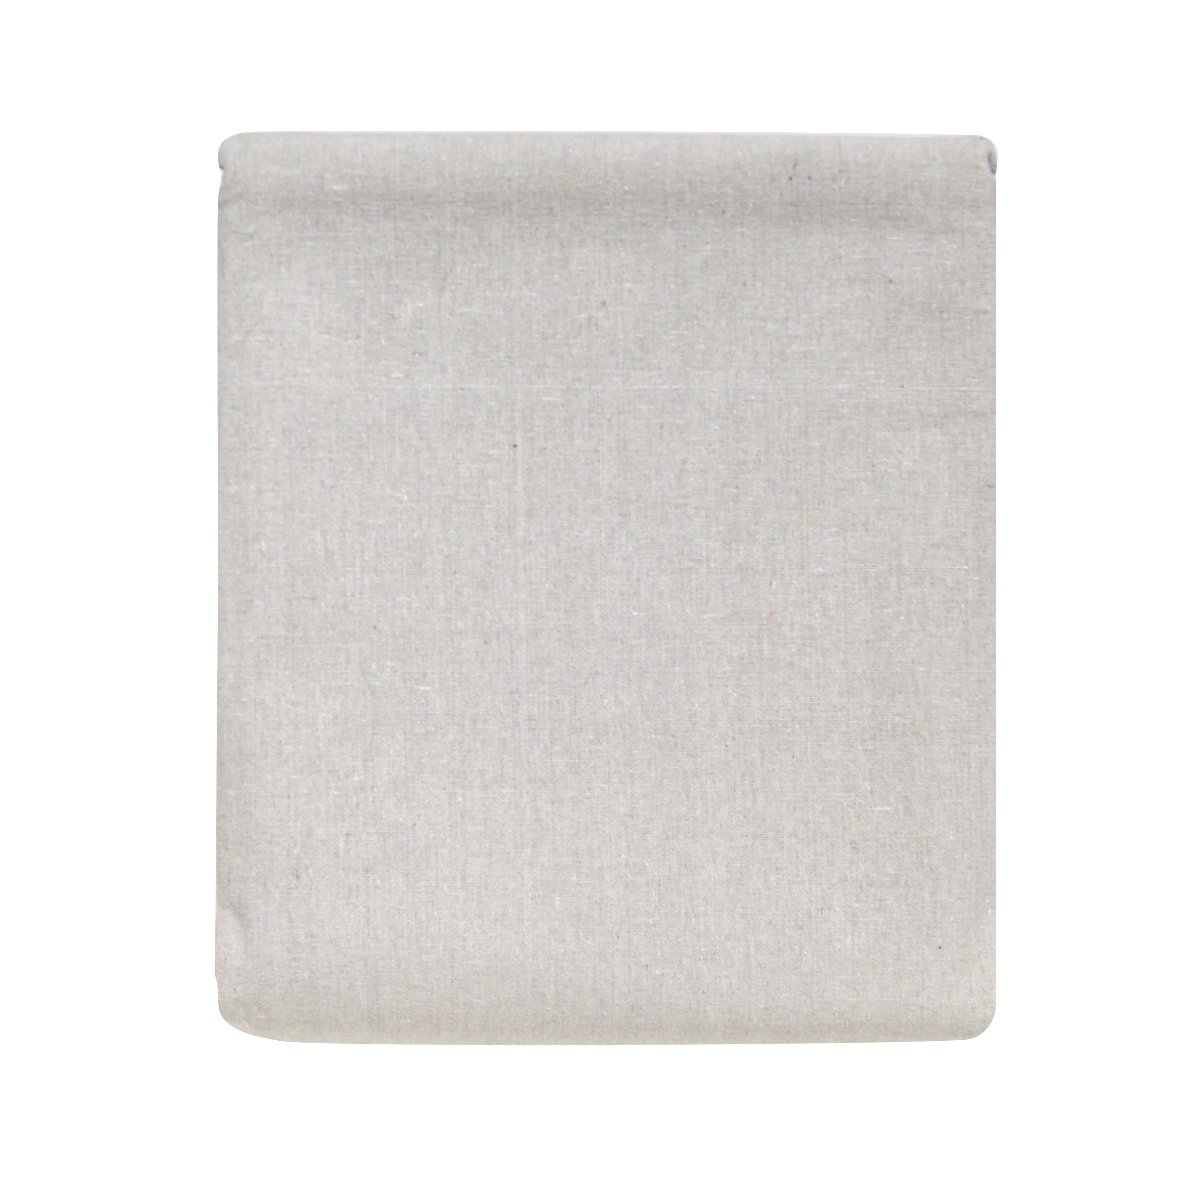 Trimaco 7-Ounce 5-Feet by 5-Feet Butyl II Two Layer Poly-Back Canvas Drop Cloth 85355 Paint Sundries Solutions